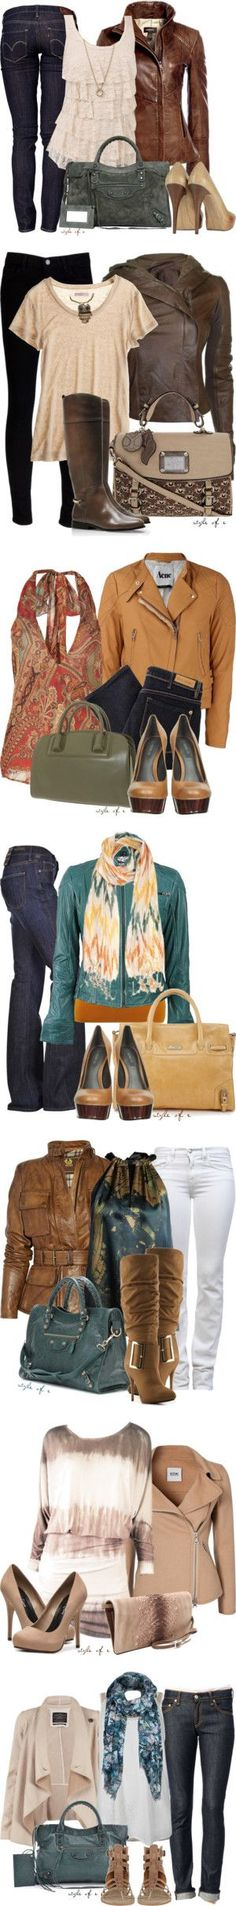 """Leather Jackets"" by styleofe on Polyvore"